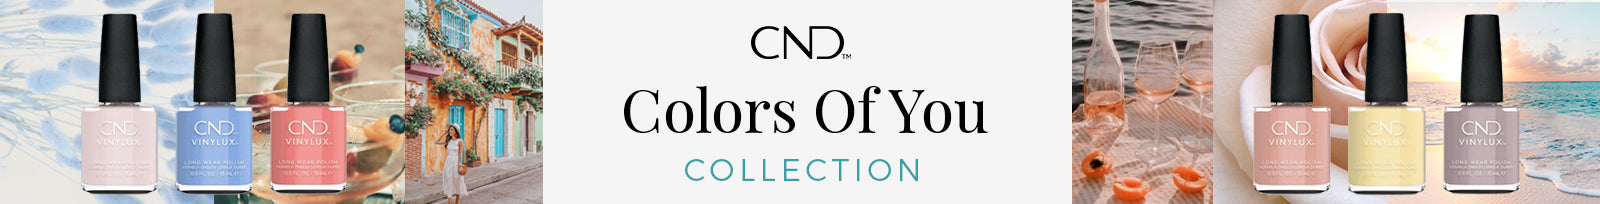 CND Colors Of You Spring 2021 Collection